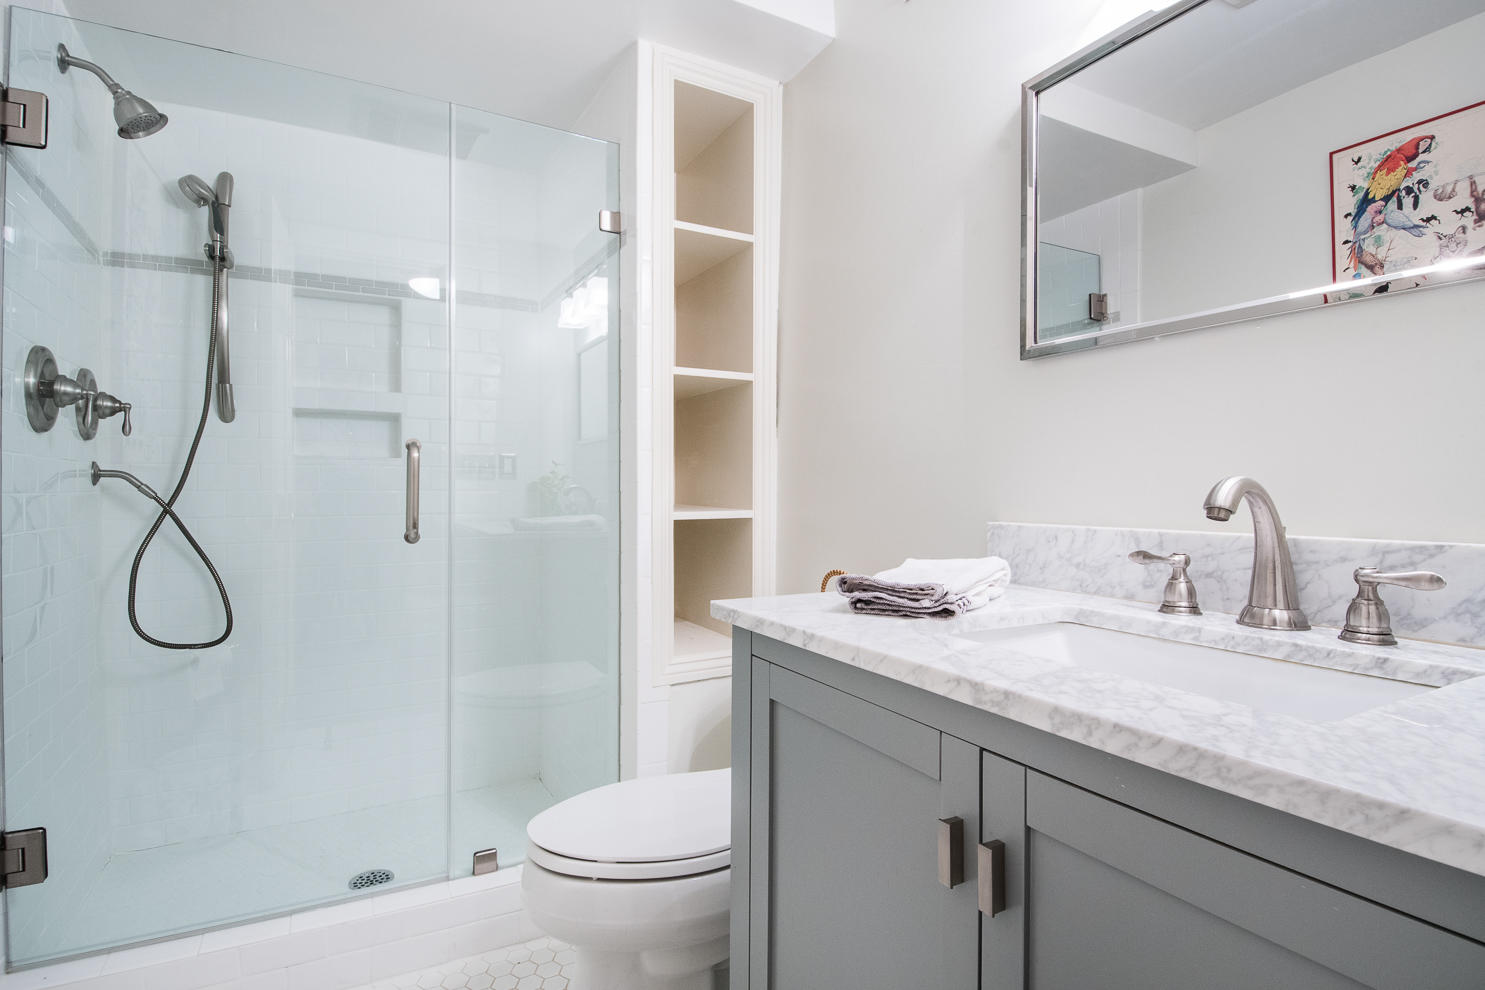 South of Broad Homes For Sale - 1 Prices, Charleston, SC - 62